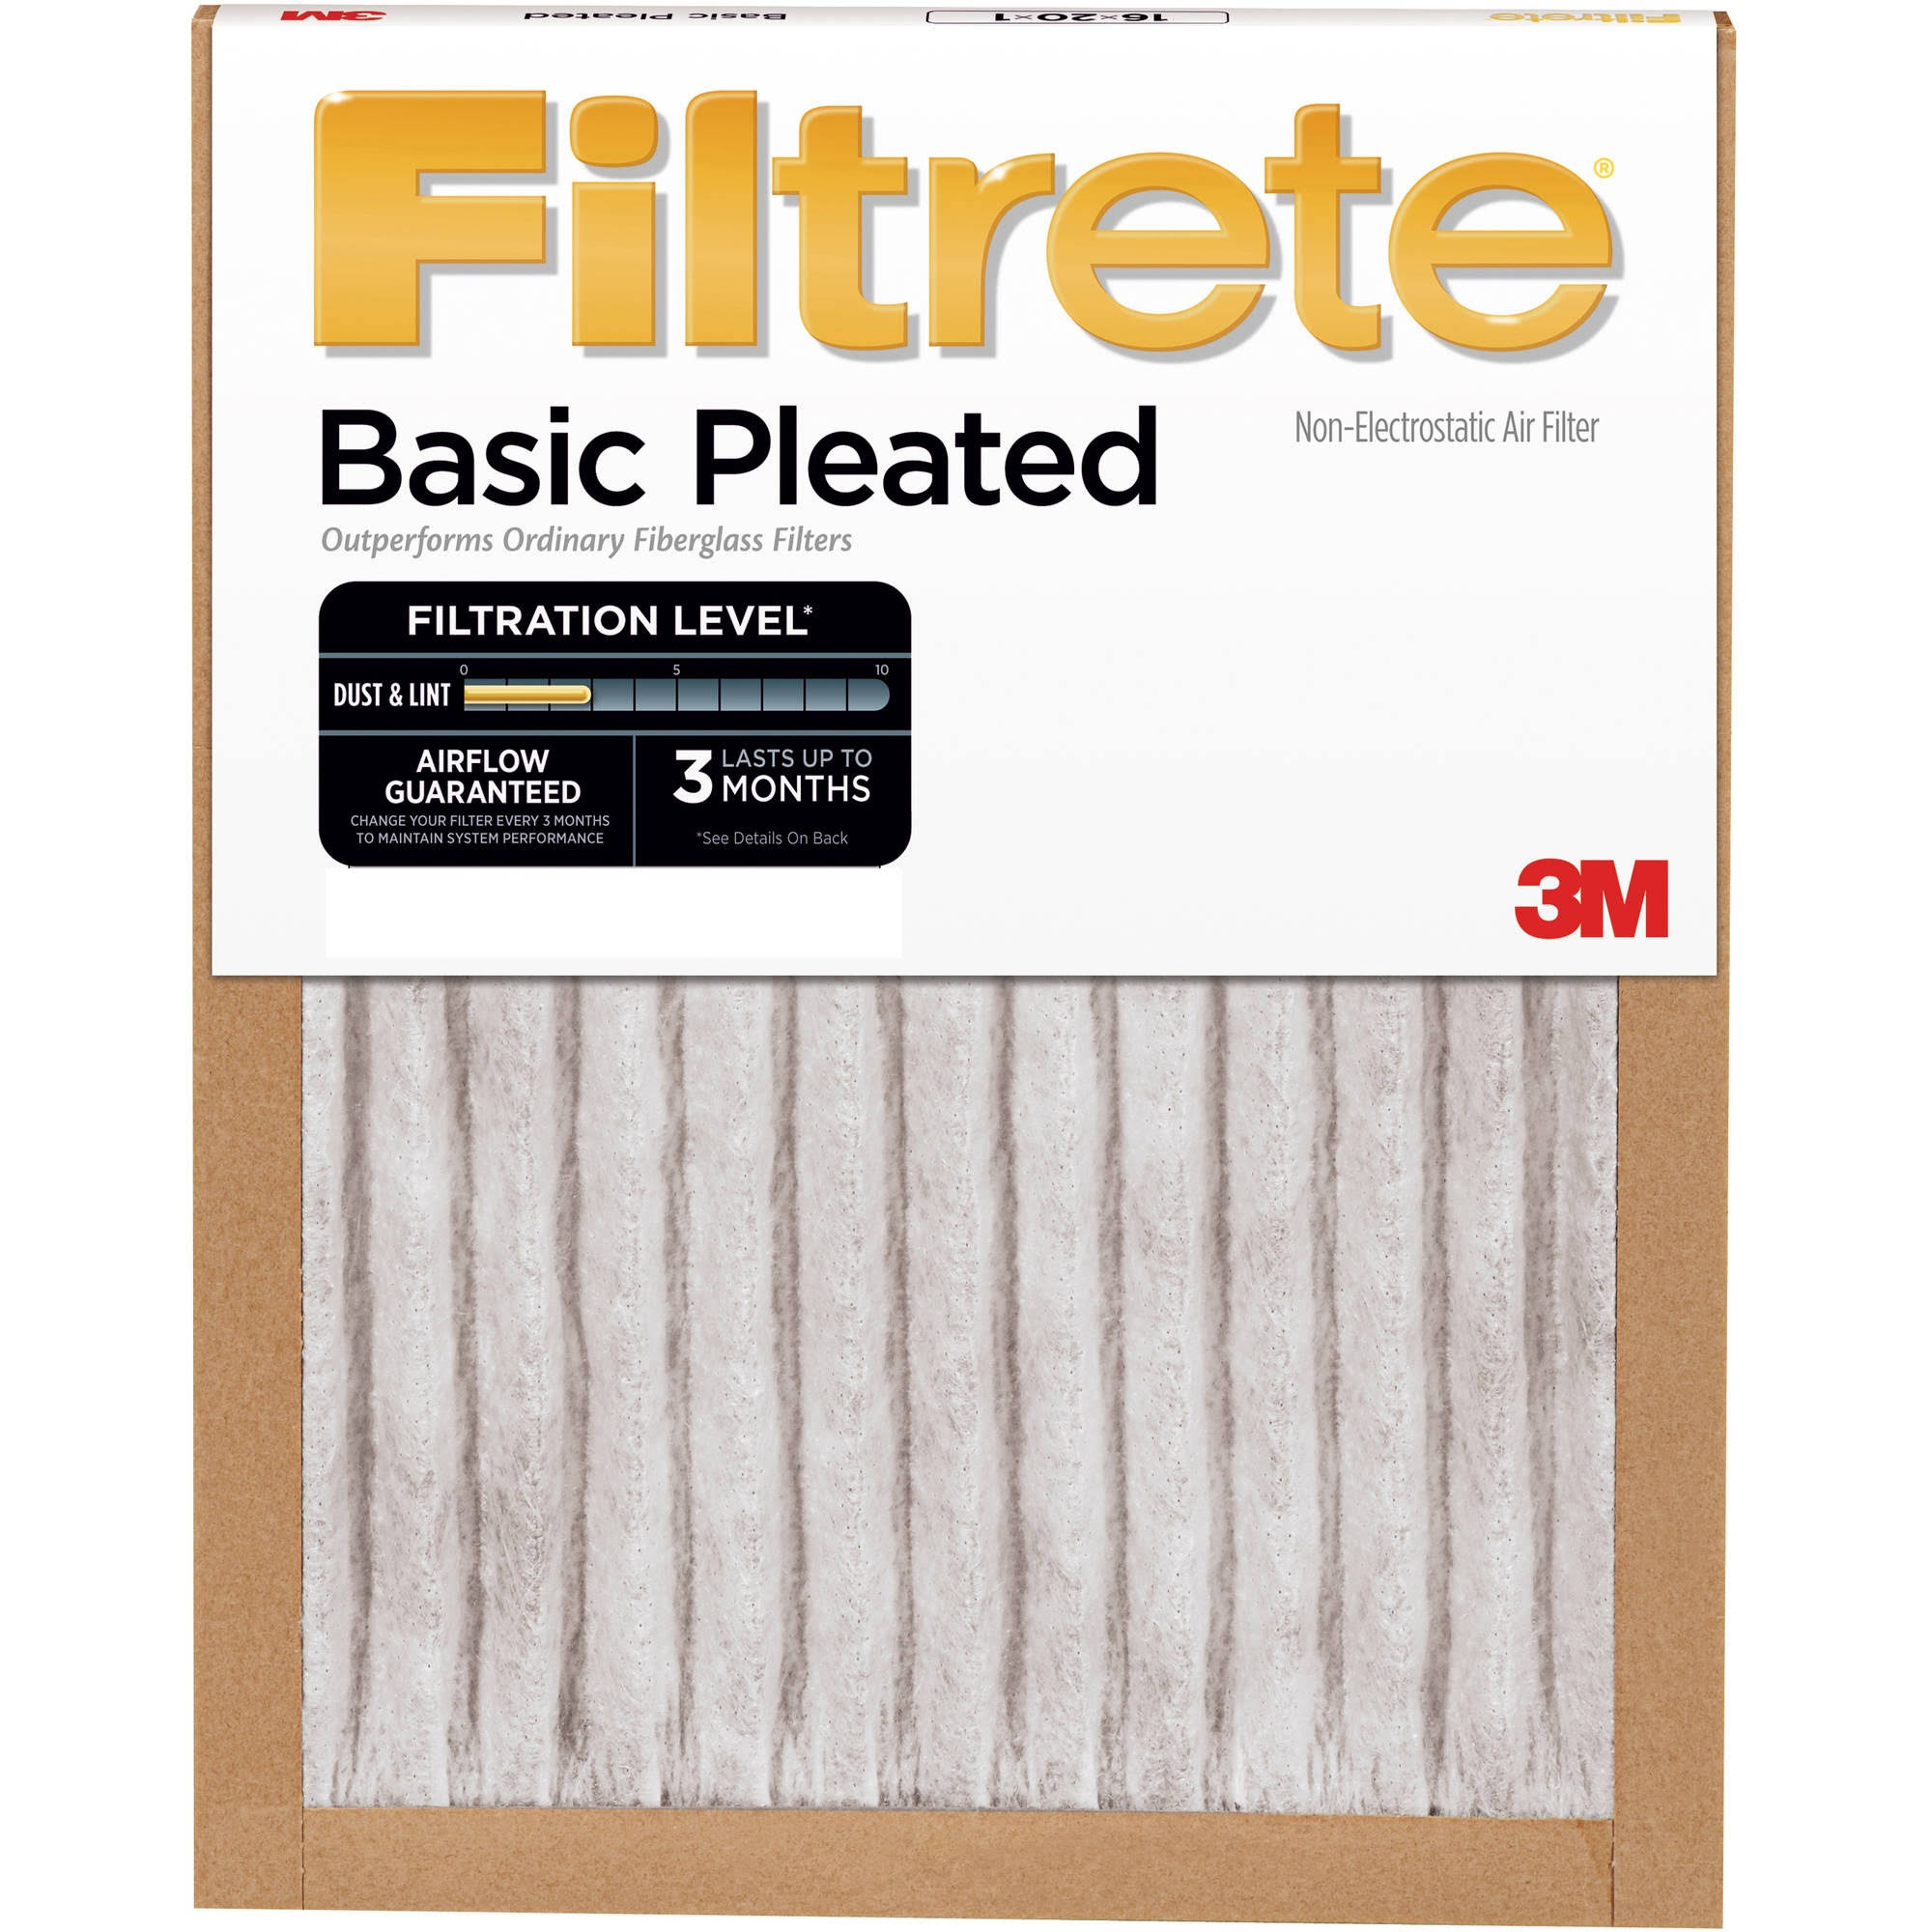 3M Highland Basic Pleated Air Filter